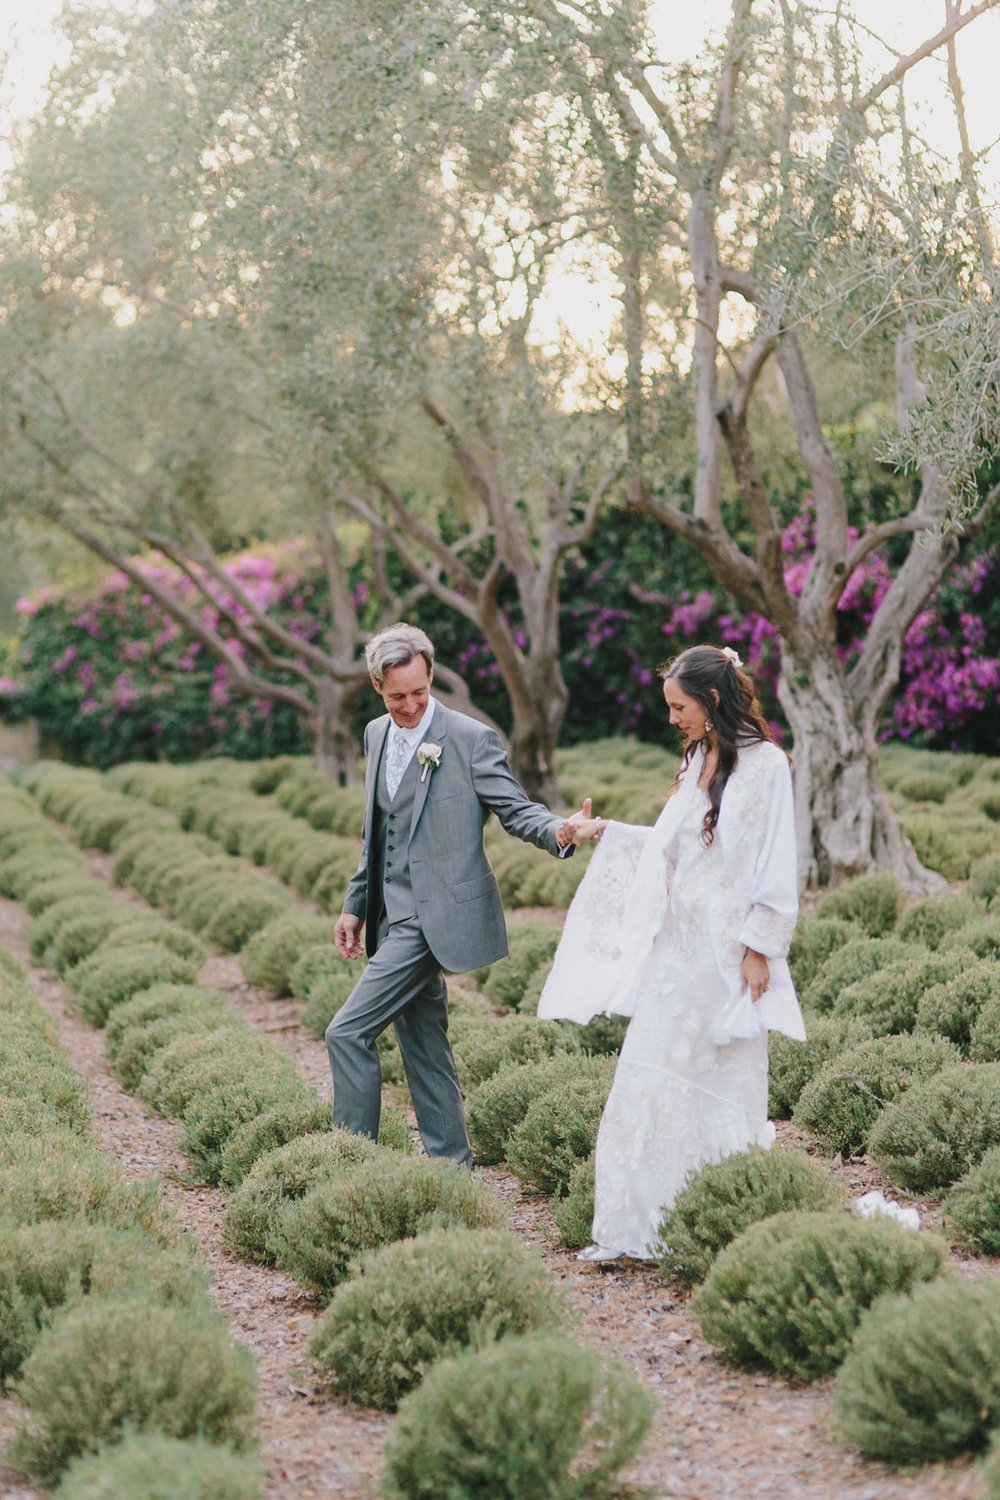 www.santabarbarawedding.com | San Ysidro Ranch | Alegria by Design | Jake + Necia Photography | Bride and Groom